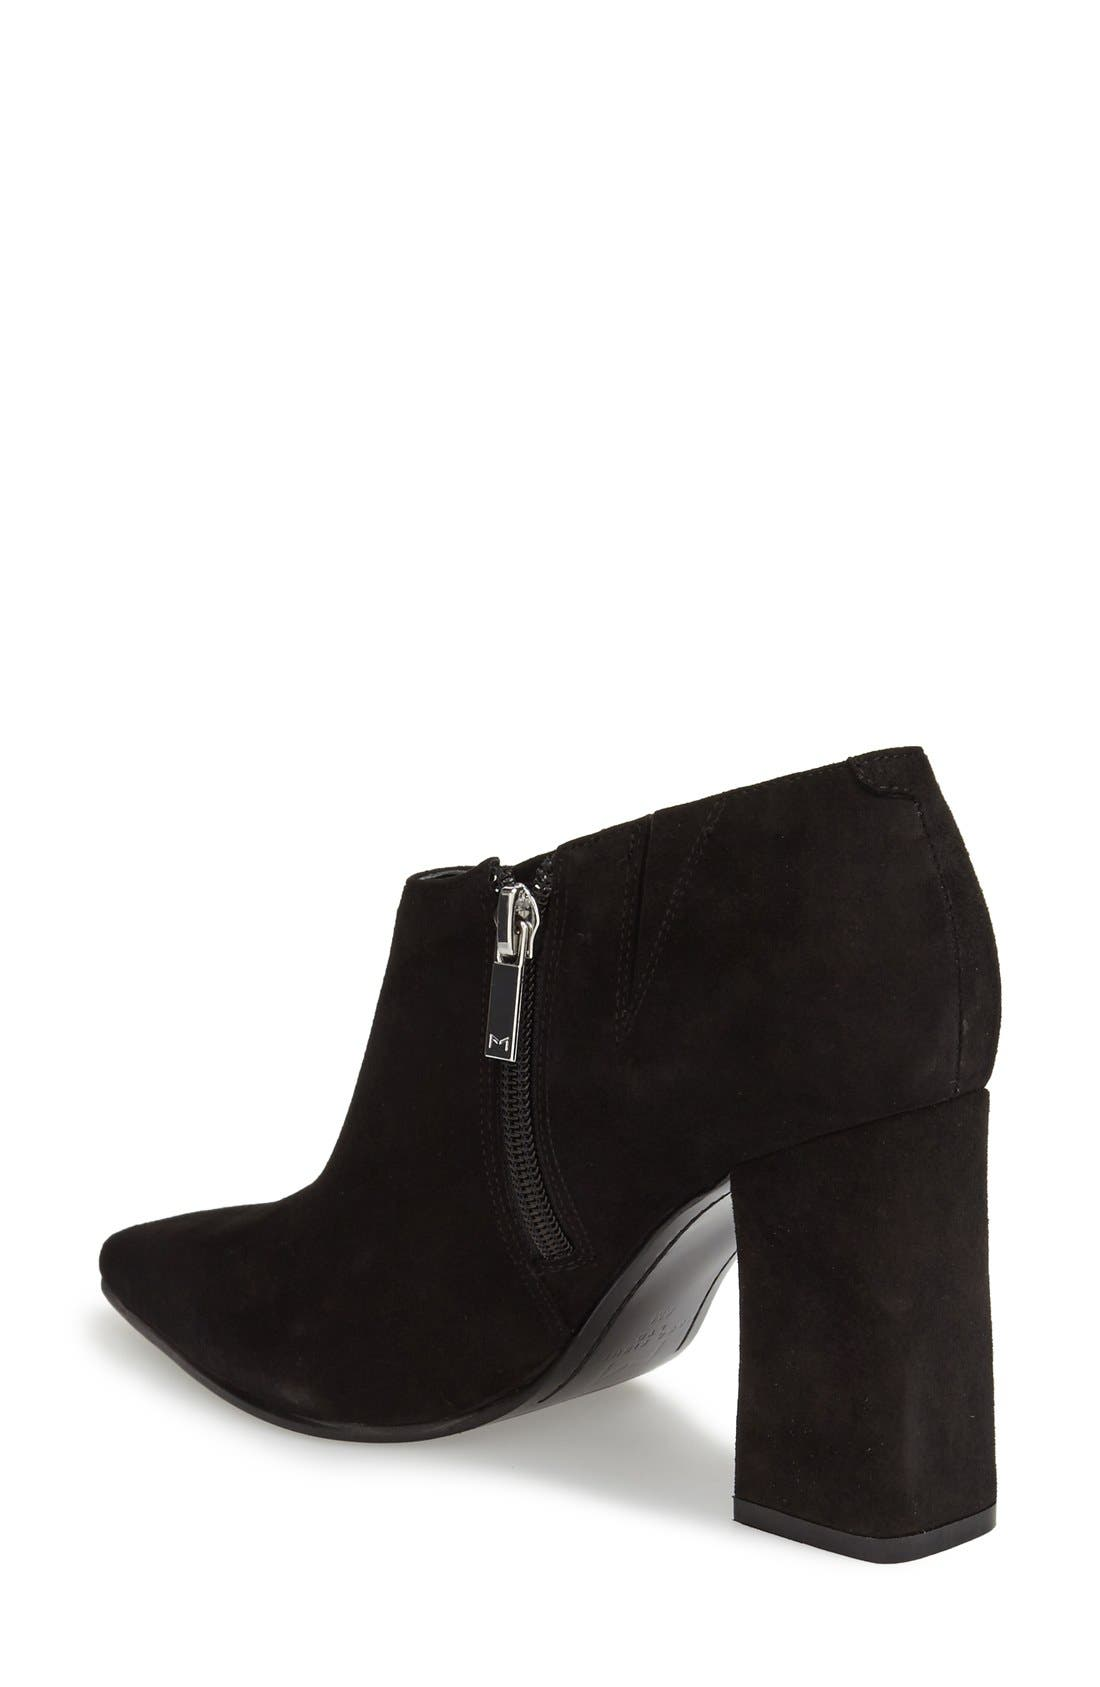 'Jayla' Block Heel Bootie,                             Alternate thumbnail 2, color,                             Black Suede